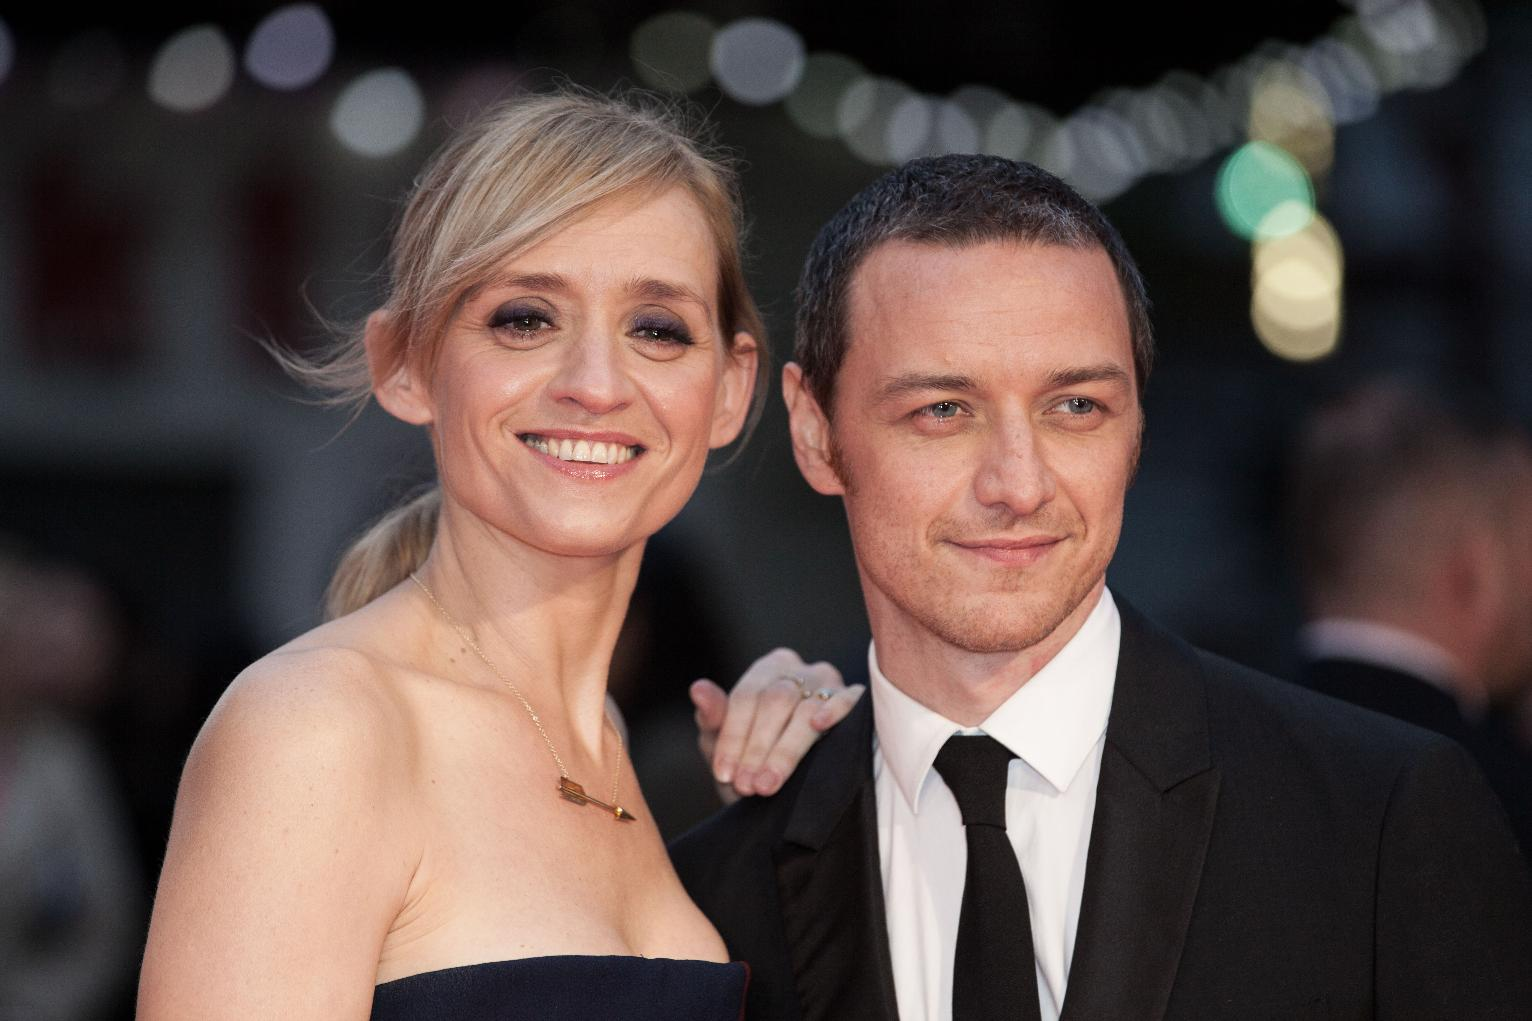 James McAvoy and Anne-Marie Duff announce divorce   Entertainment News   US News